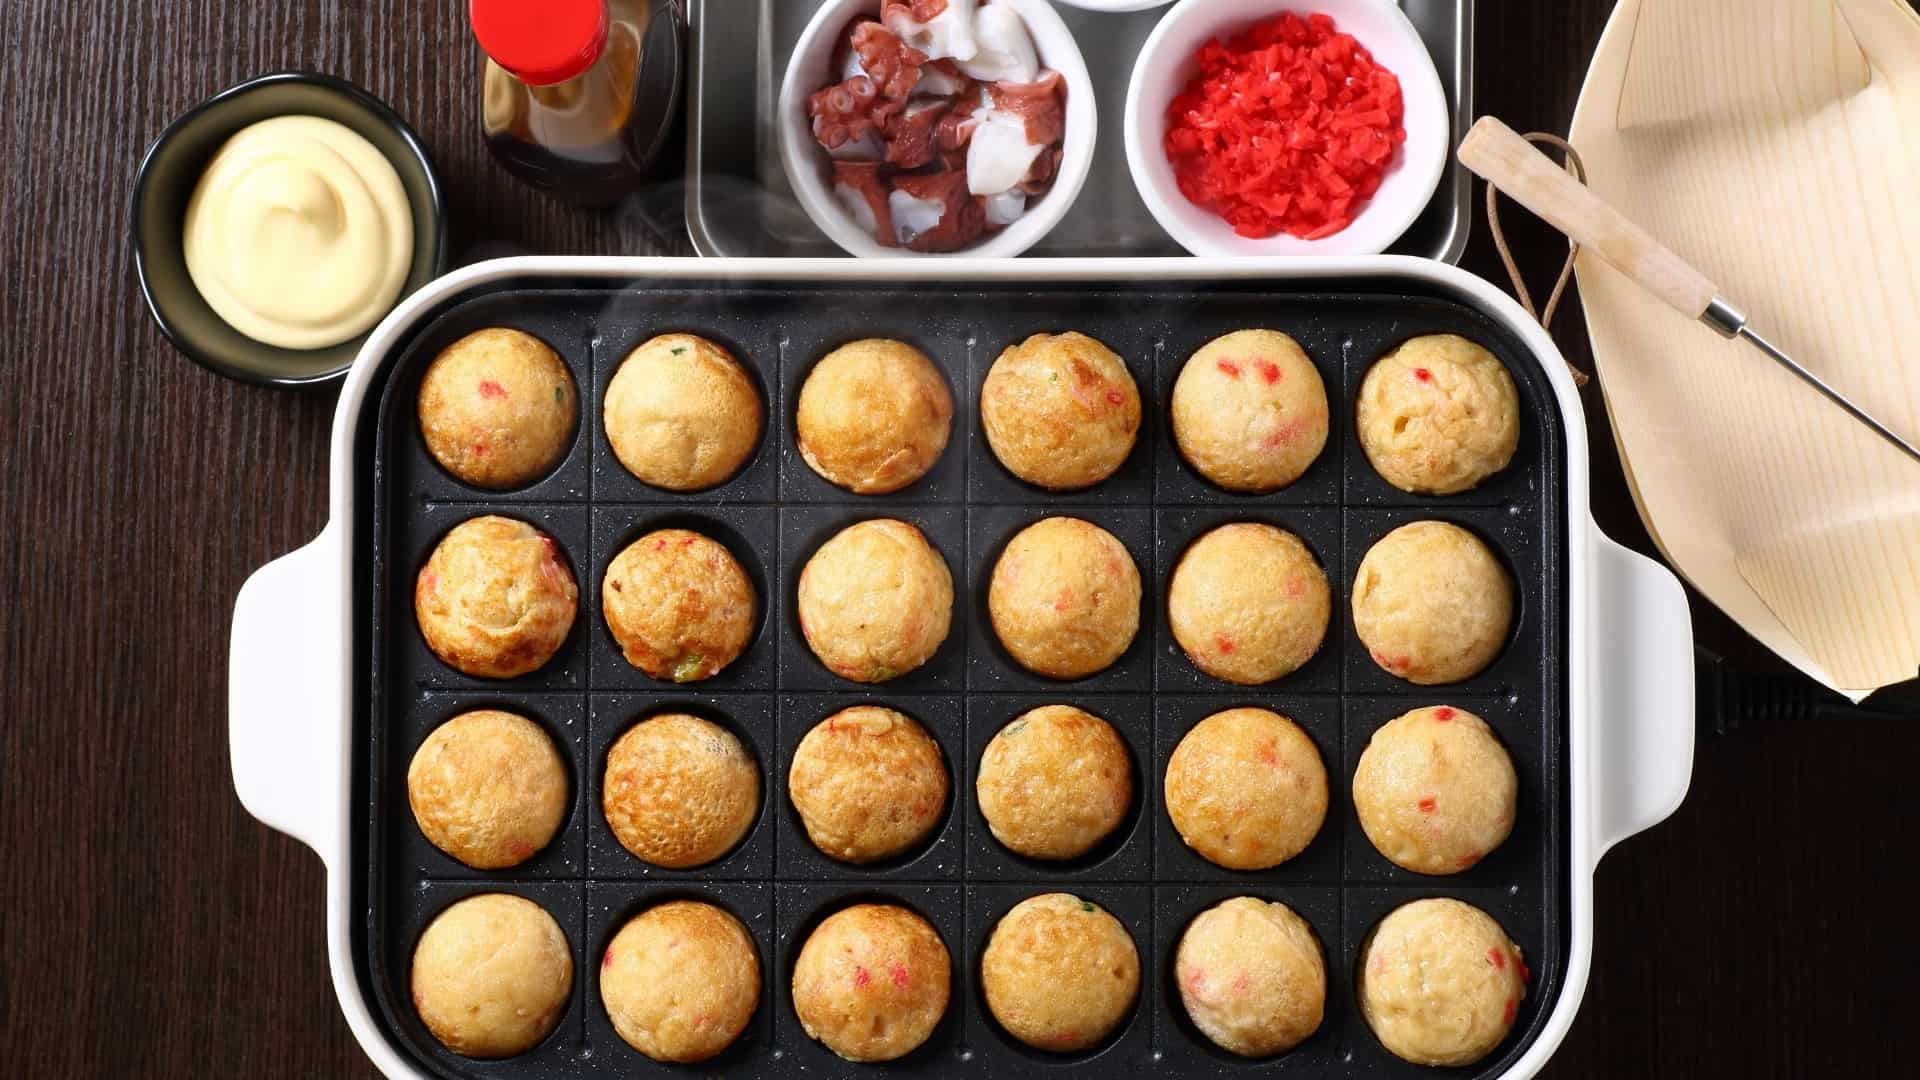 How to clean your takoyaki maker